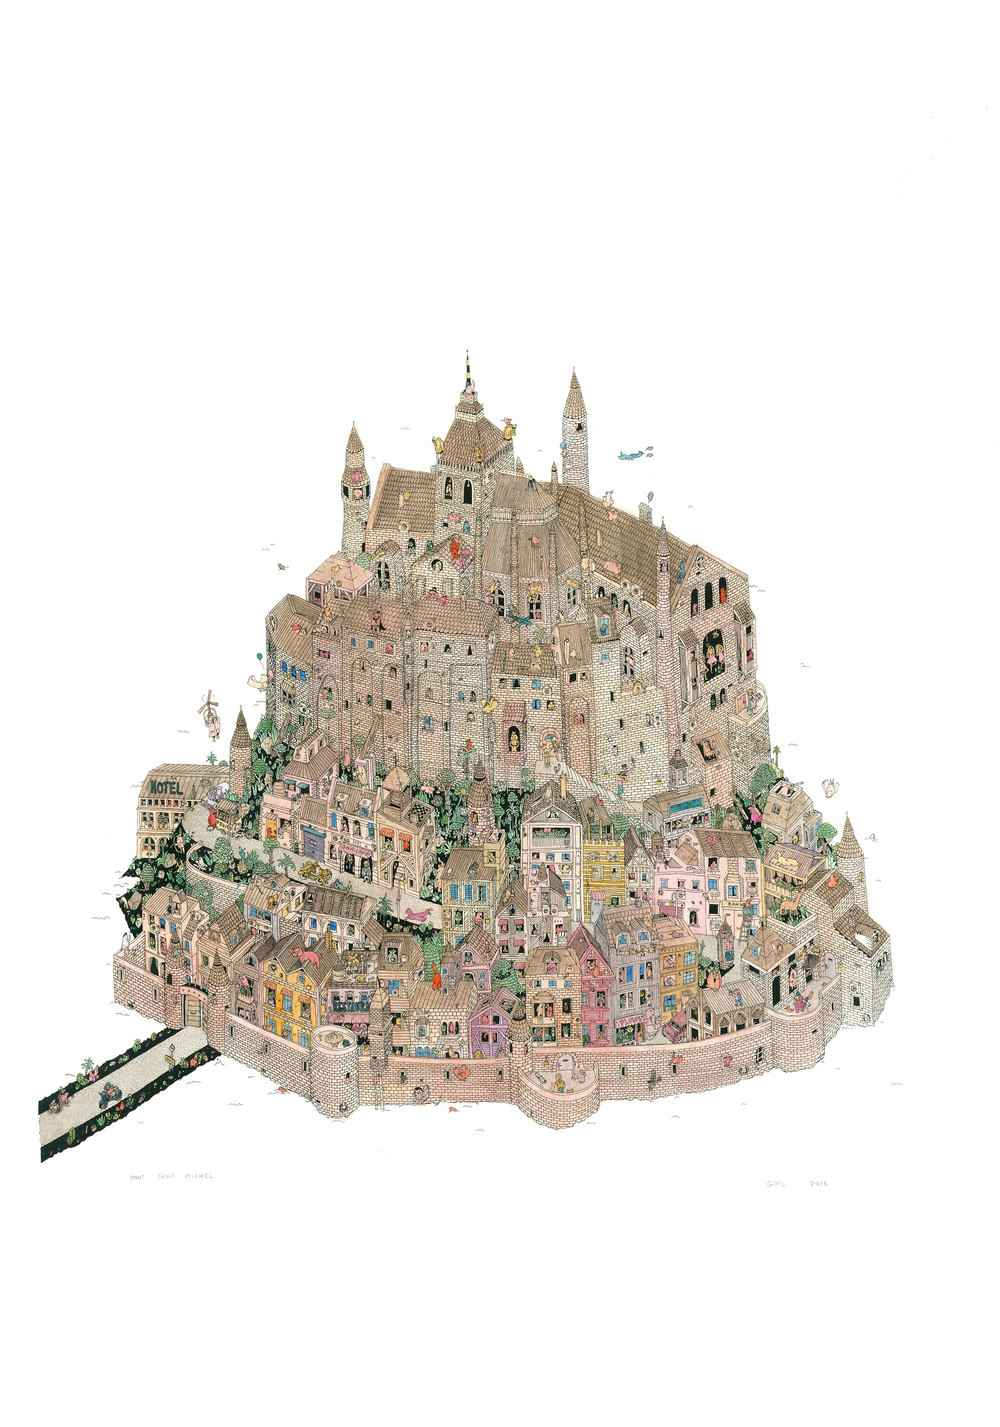 Mont-Saint Michel - Lighter   Hand made serigraph print, hand-colored with watercolour & mixed media, on 350gsm Colorset white paper.- 84h x 69w cm - Unique edition of 10